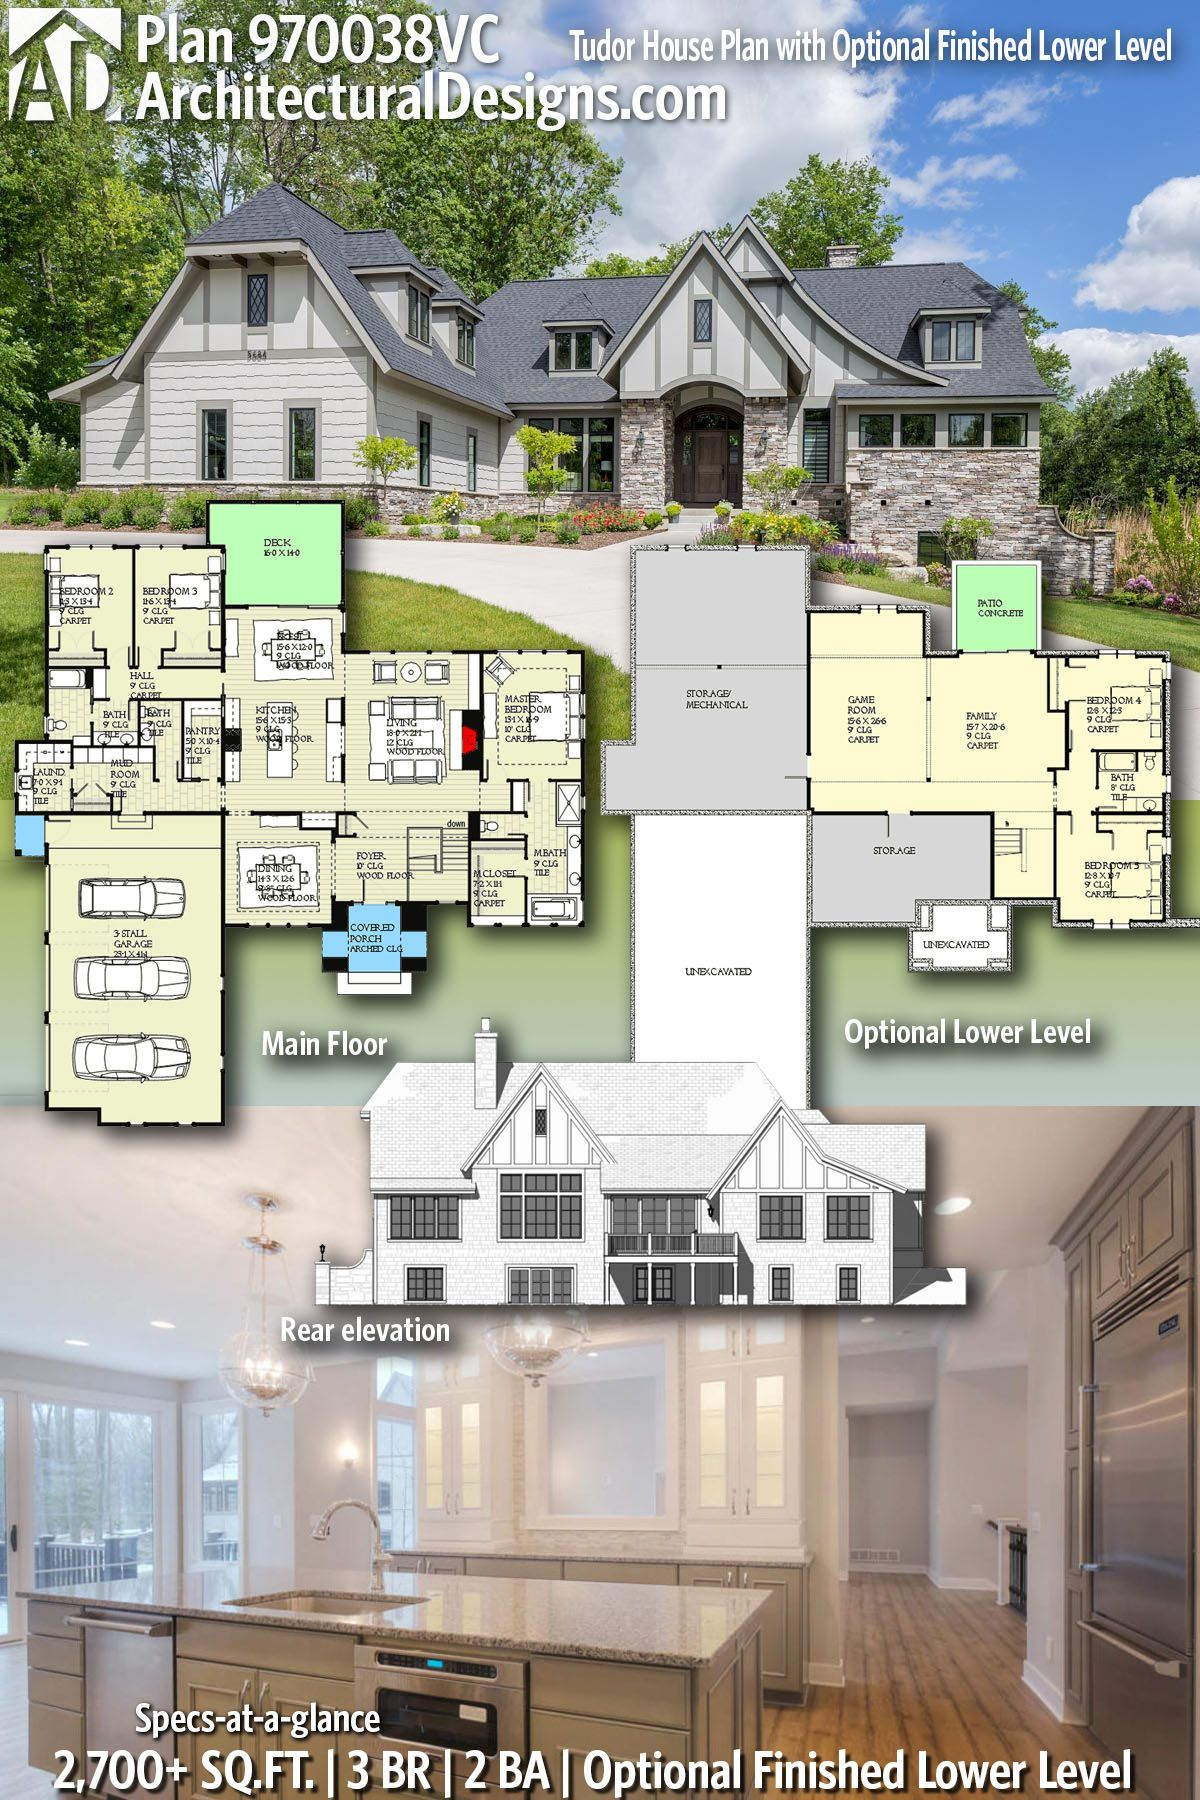 Plan 970038vc Tudor House Plan With Optional Finished